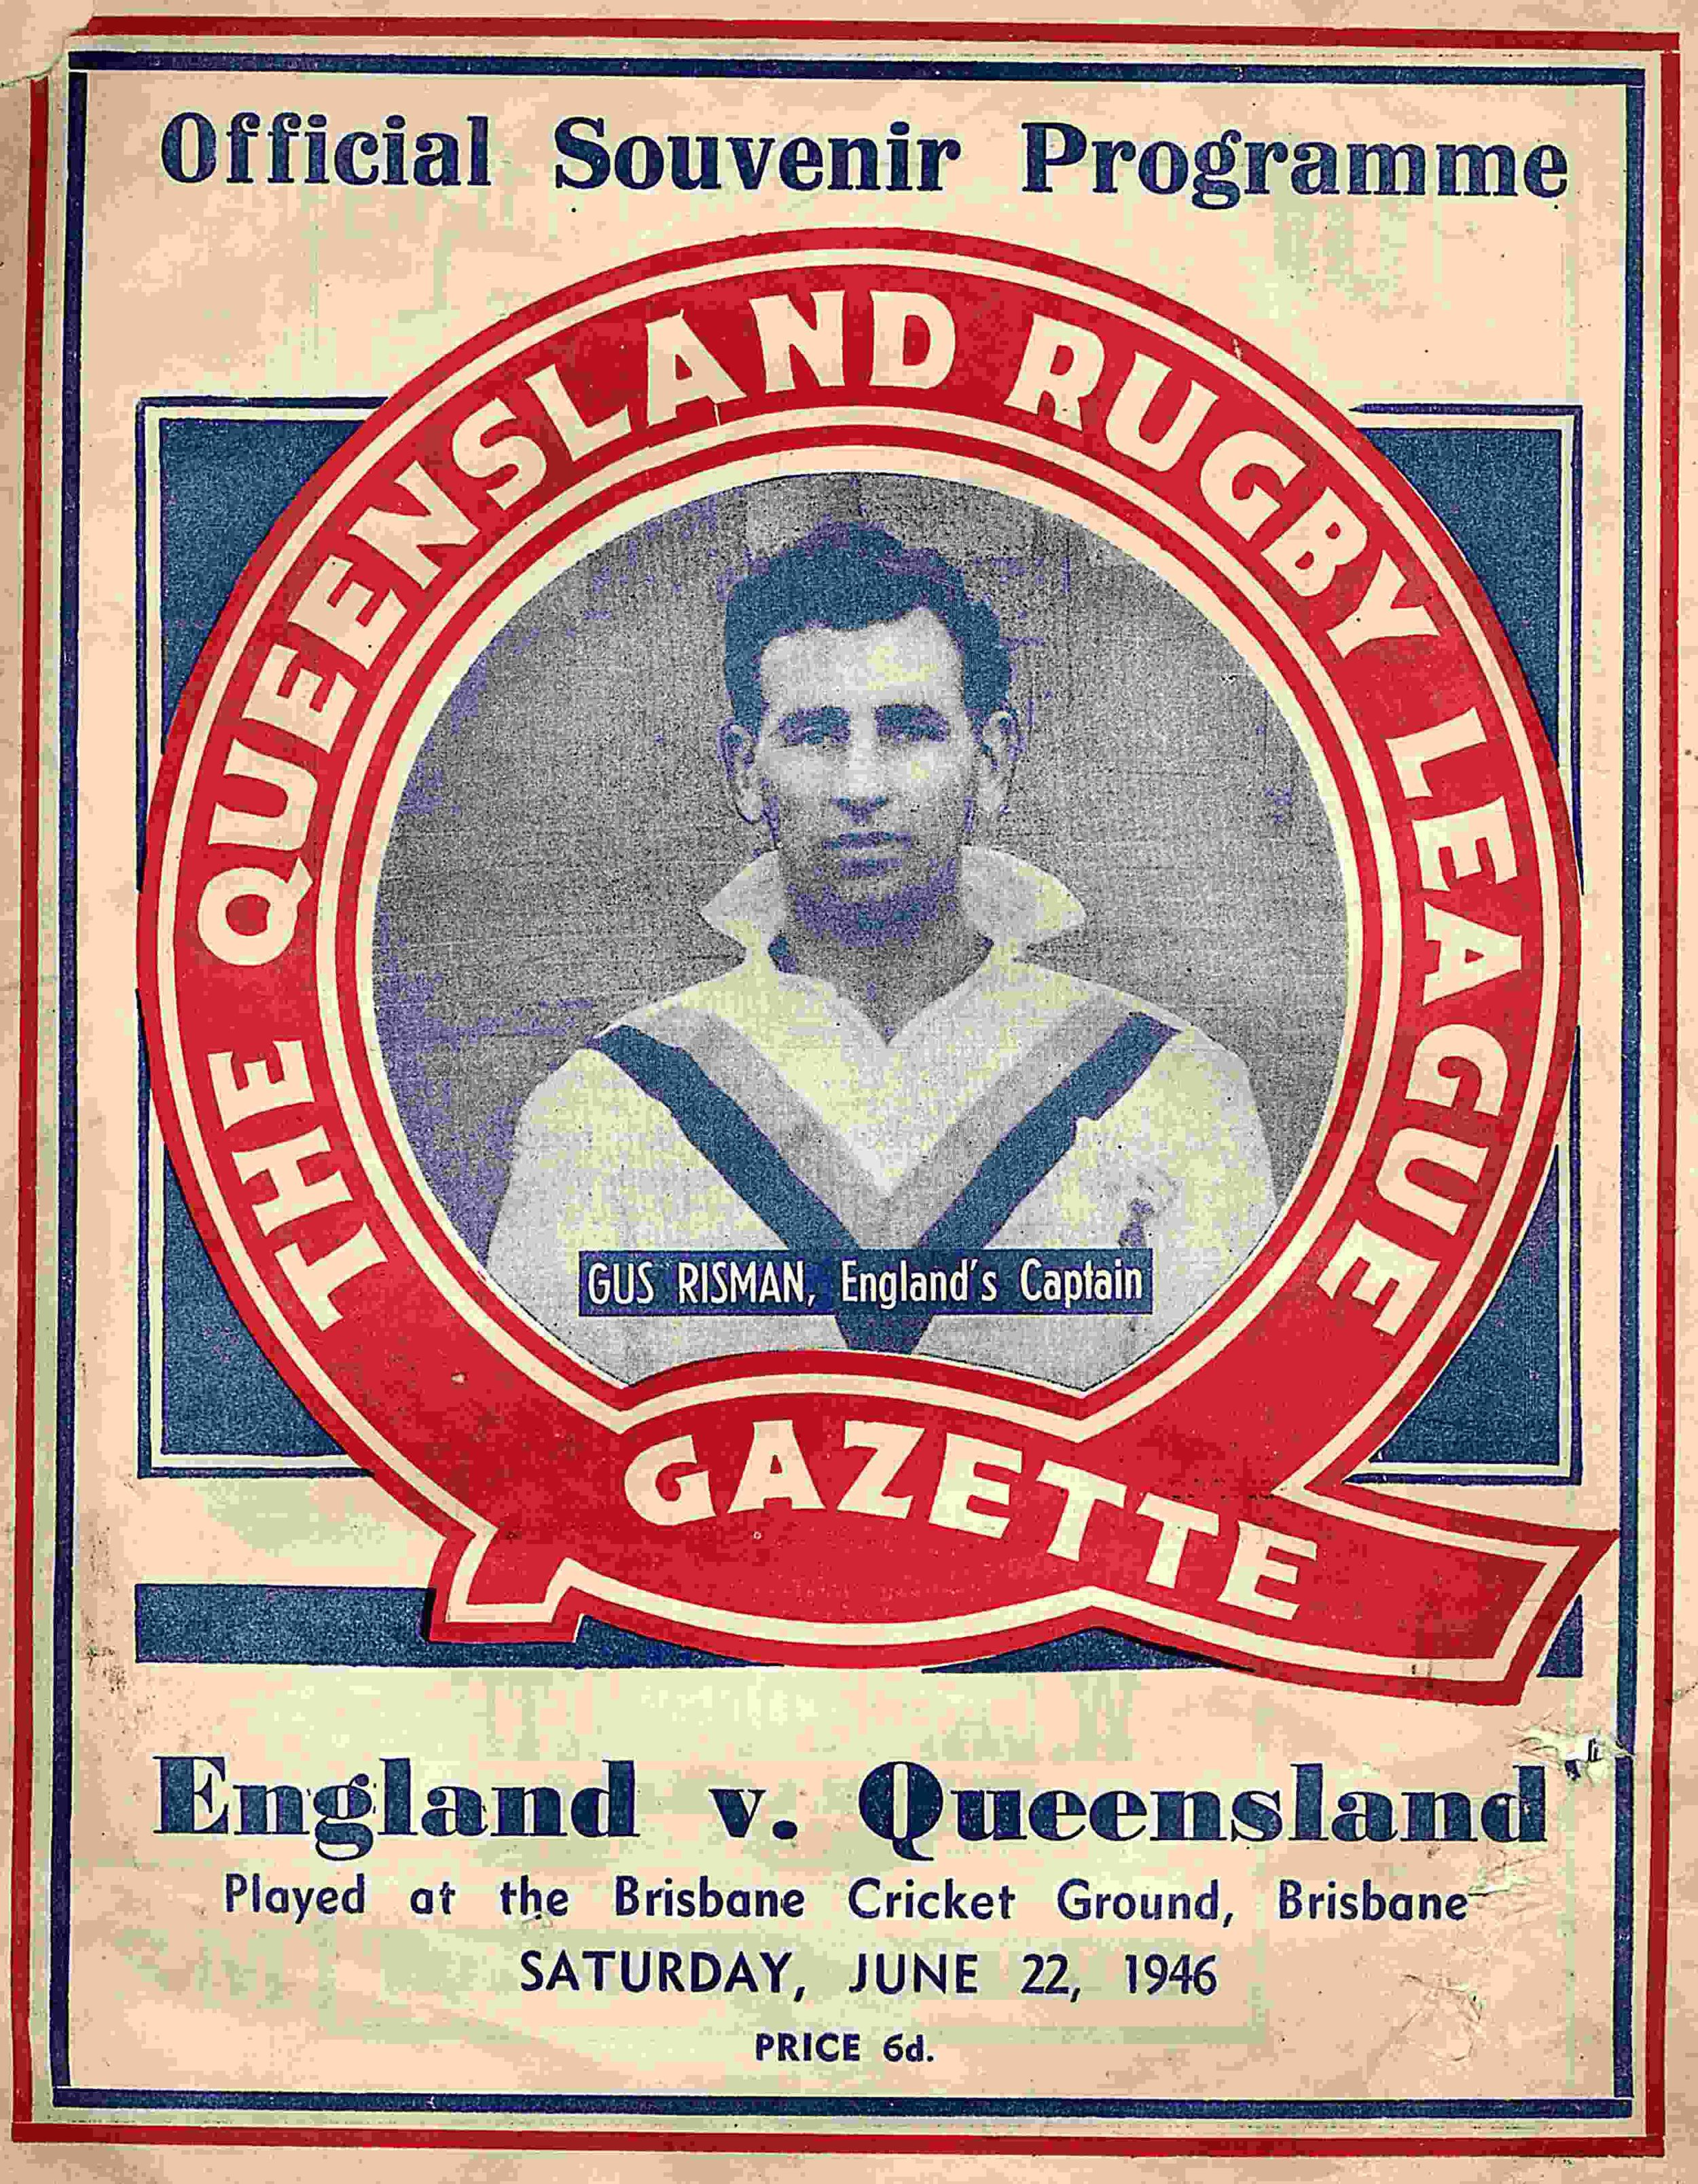 Gus Risman as captain of the 1946 Lions' Tour